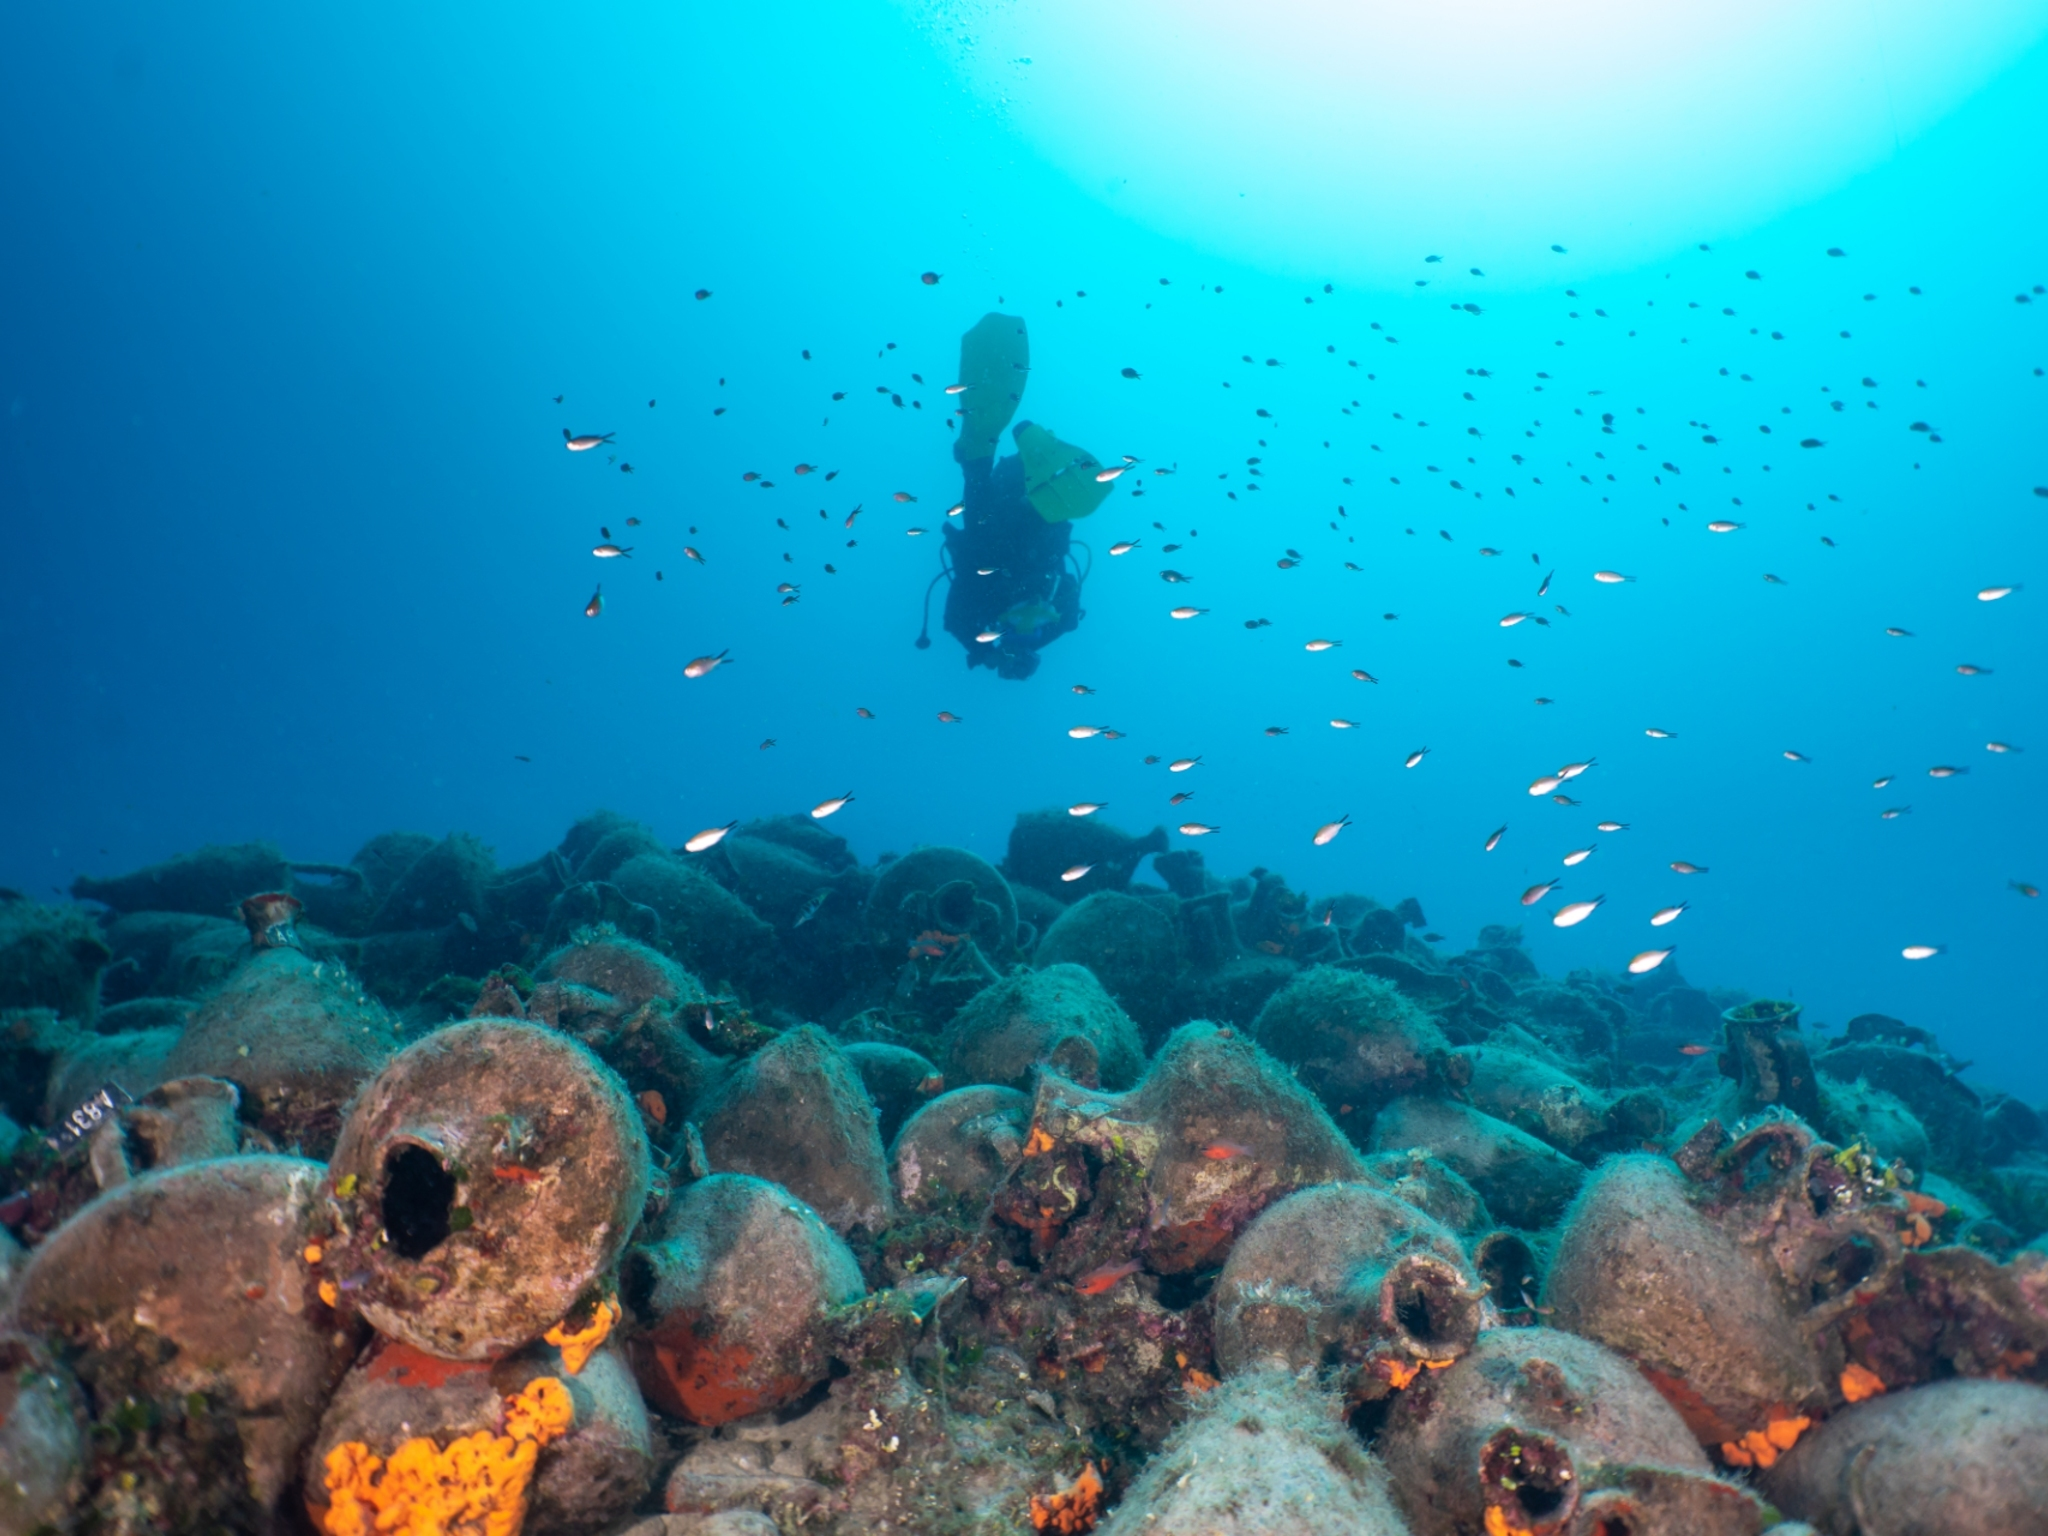 An ancient shipwreck in Greece is becoming an underwater museum